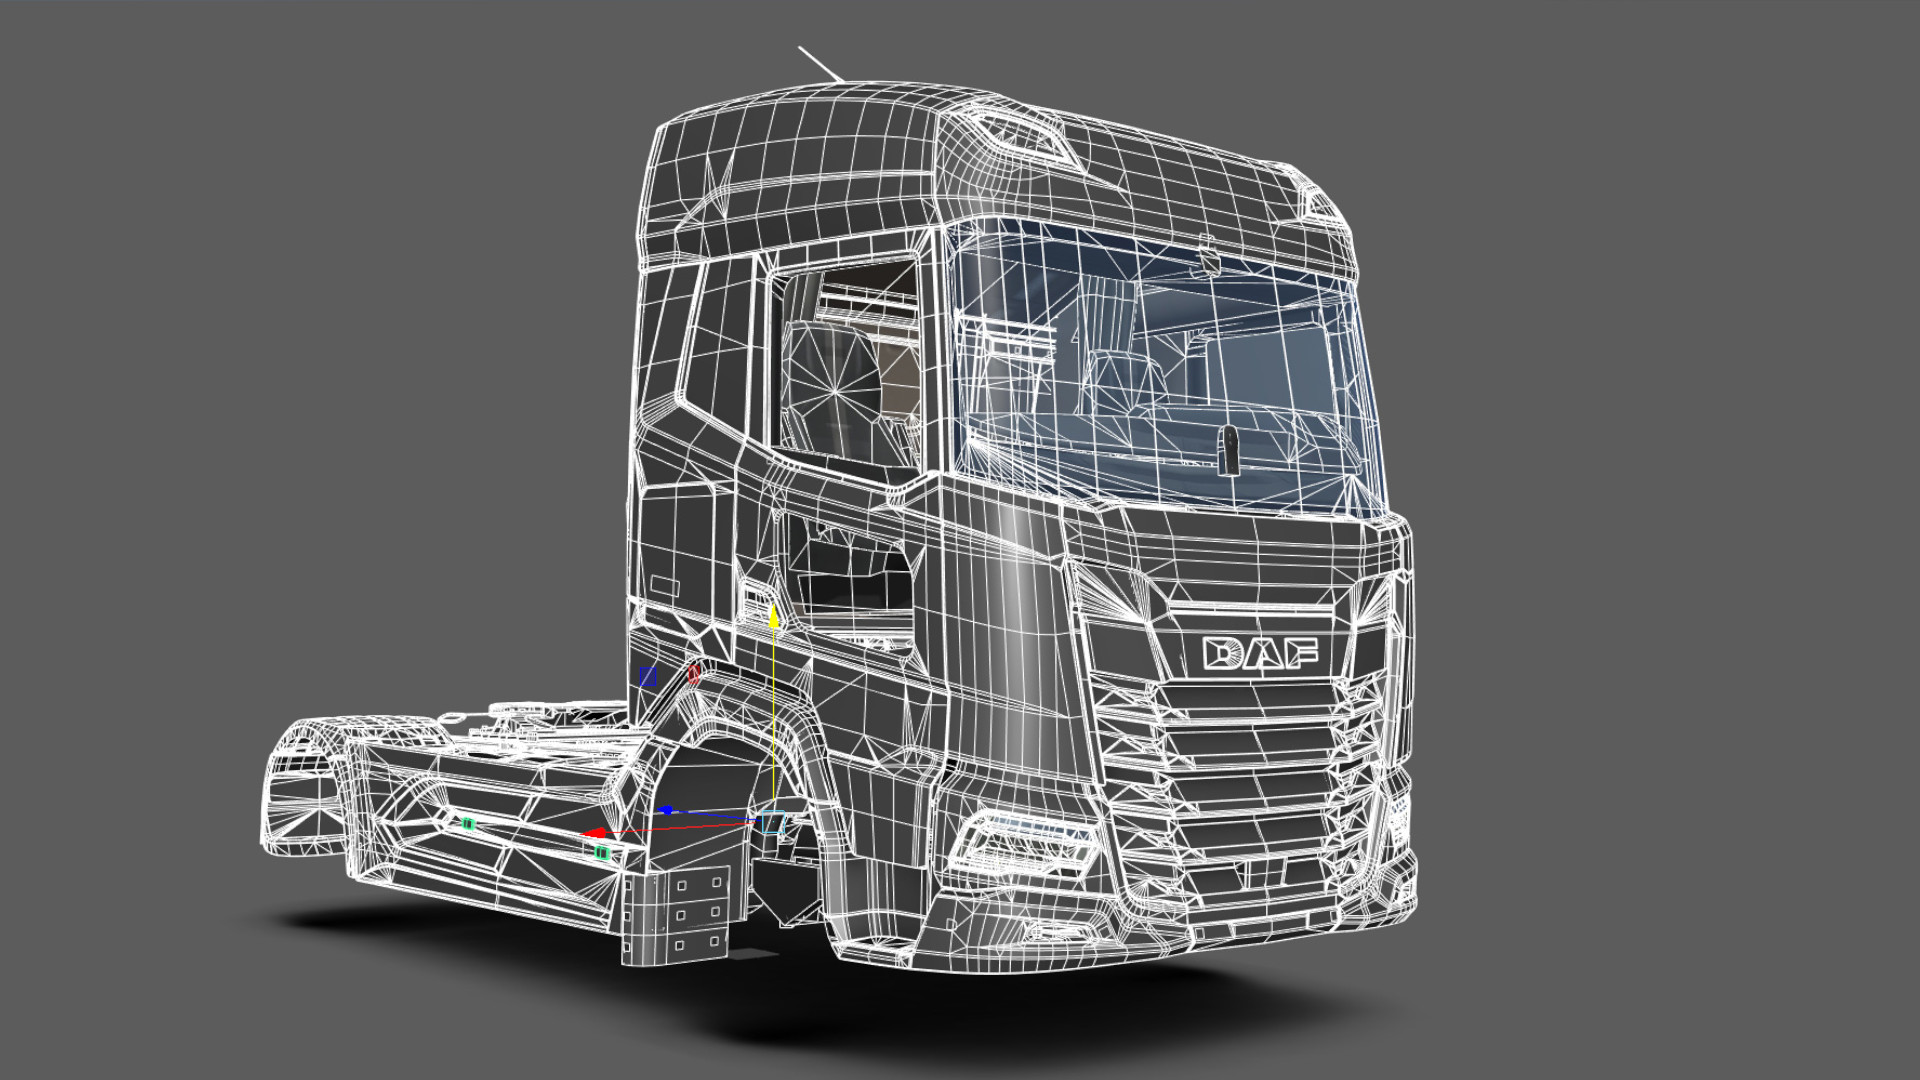 Euro Truck Simulator 2 devs provide an update on the delayed DAF XF